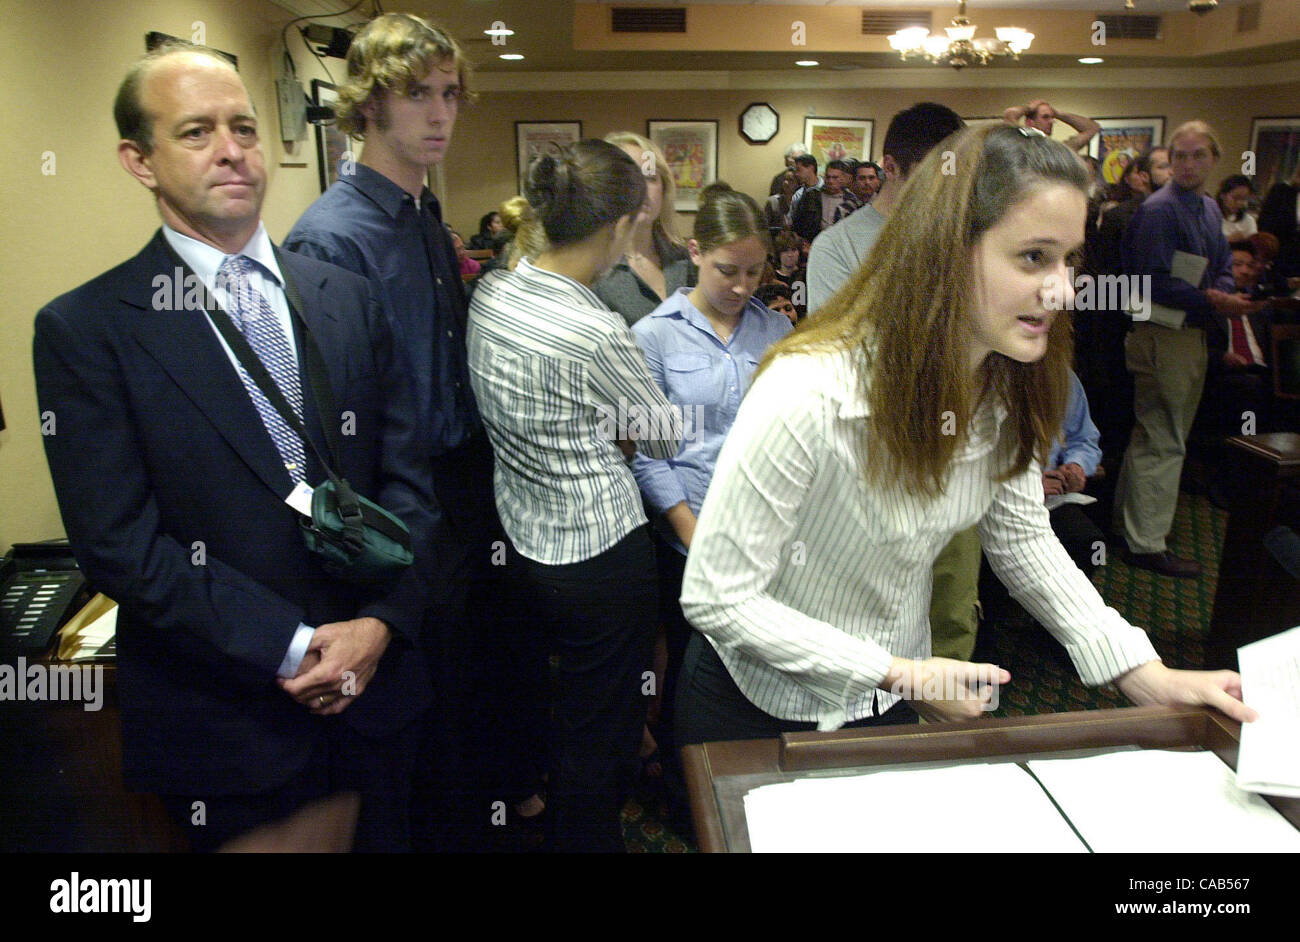 Standalone--As her teacher, Larry Freeman, left, stands by, Acalanes High School senior Danielle DiTirro gives a Stock Photo